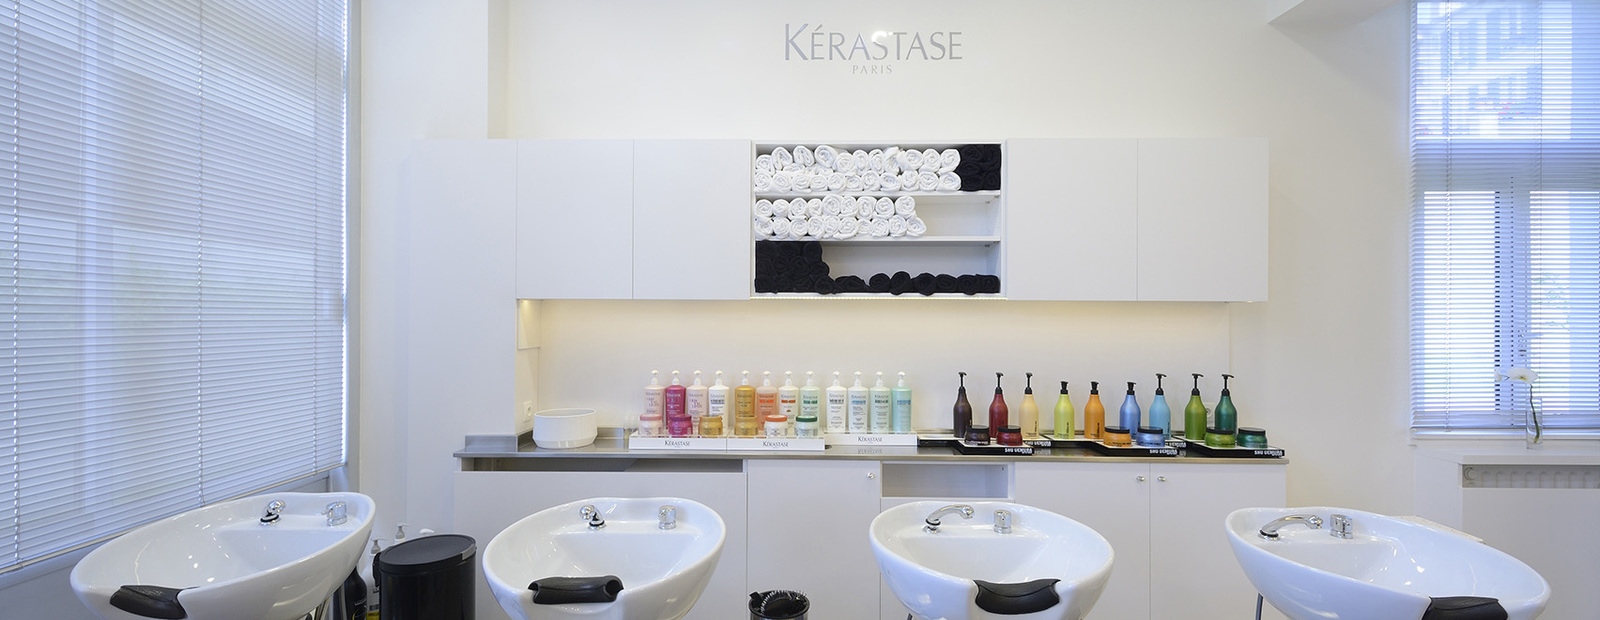 K rastase salon salon just sacha professional hair care - Salon de massage boulogne billancourt ...